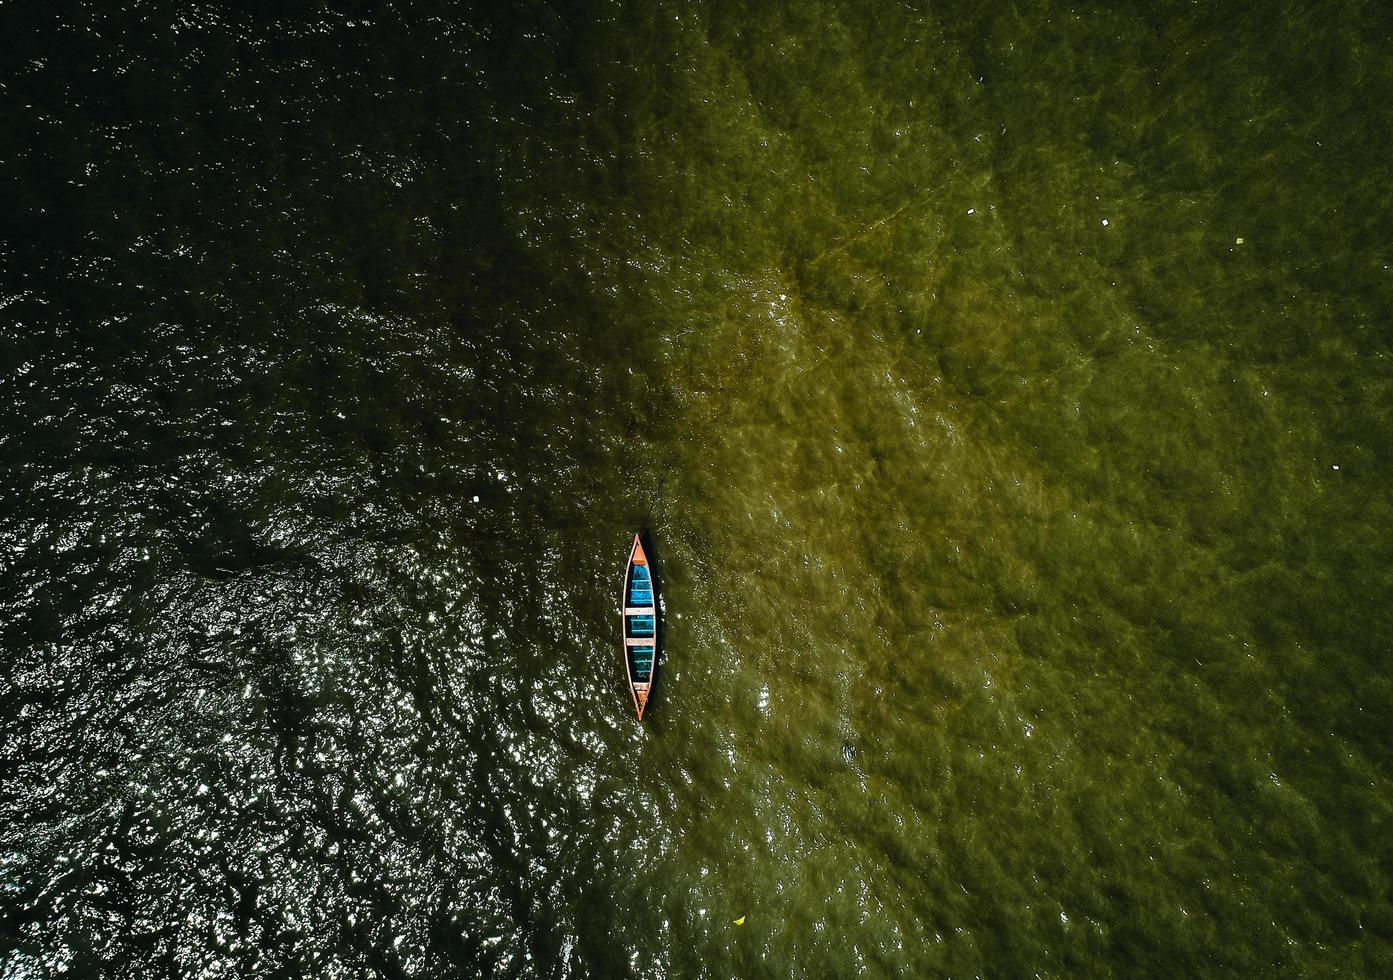 Aerial view of boat on water photo